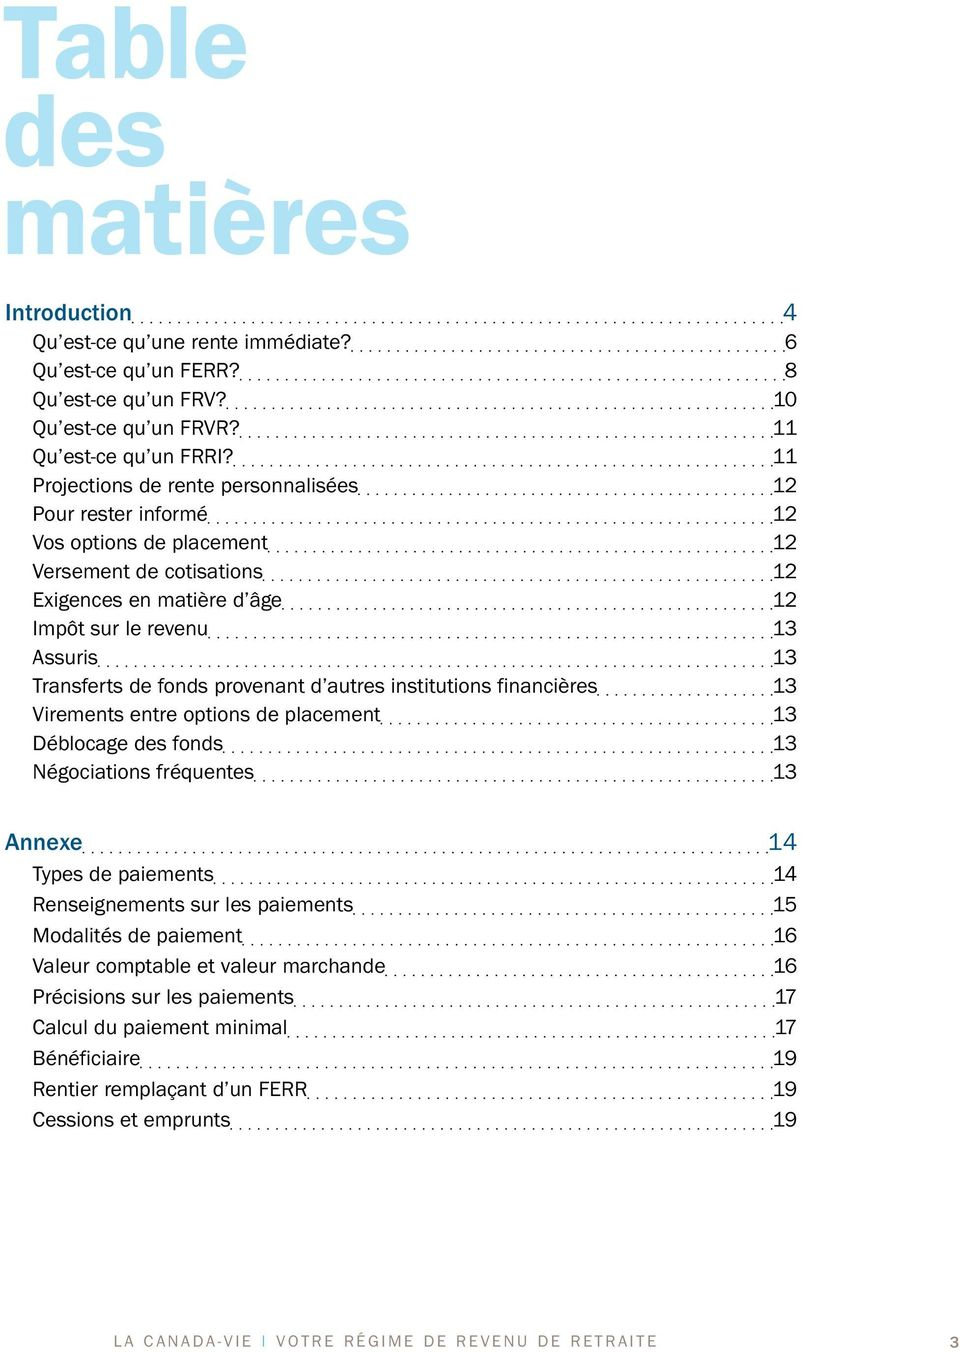 fonds provenant d autres institutions financières 13 Virements entre options de placement 13 Déblocage des fonds 13 Négociations fréquentes 13 Annexe 14 Types de paiements 14 Renseignements sur les